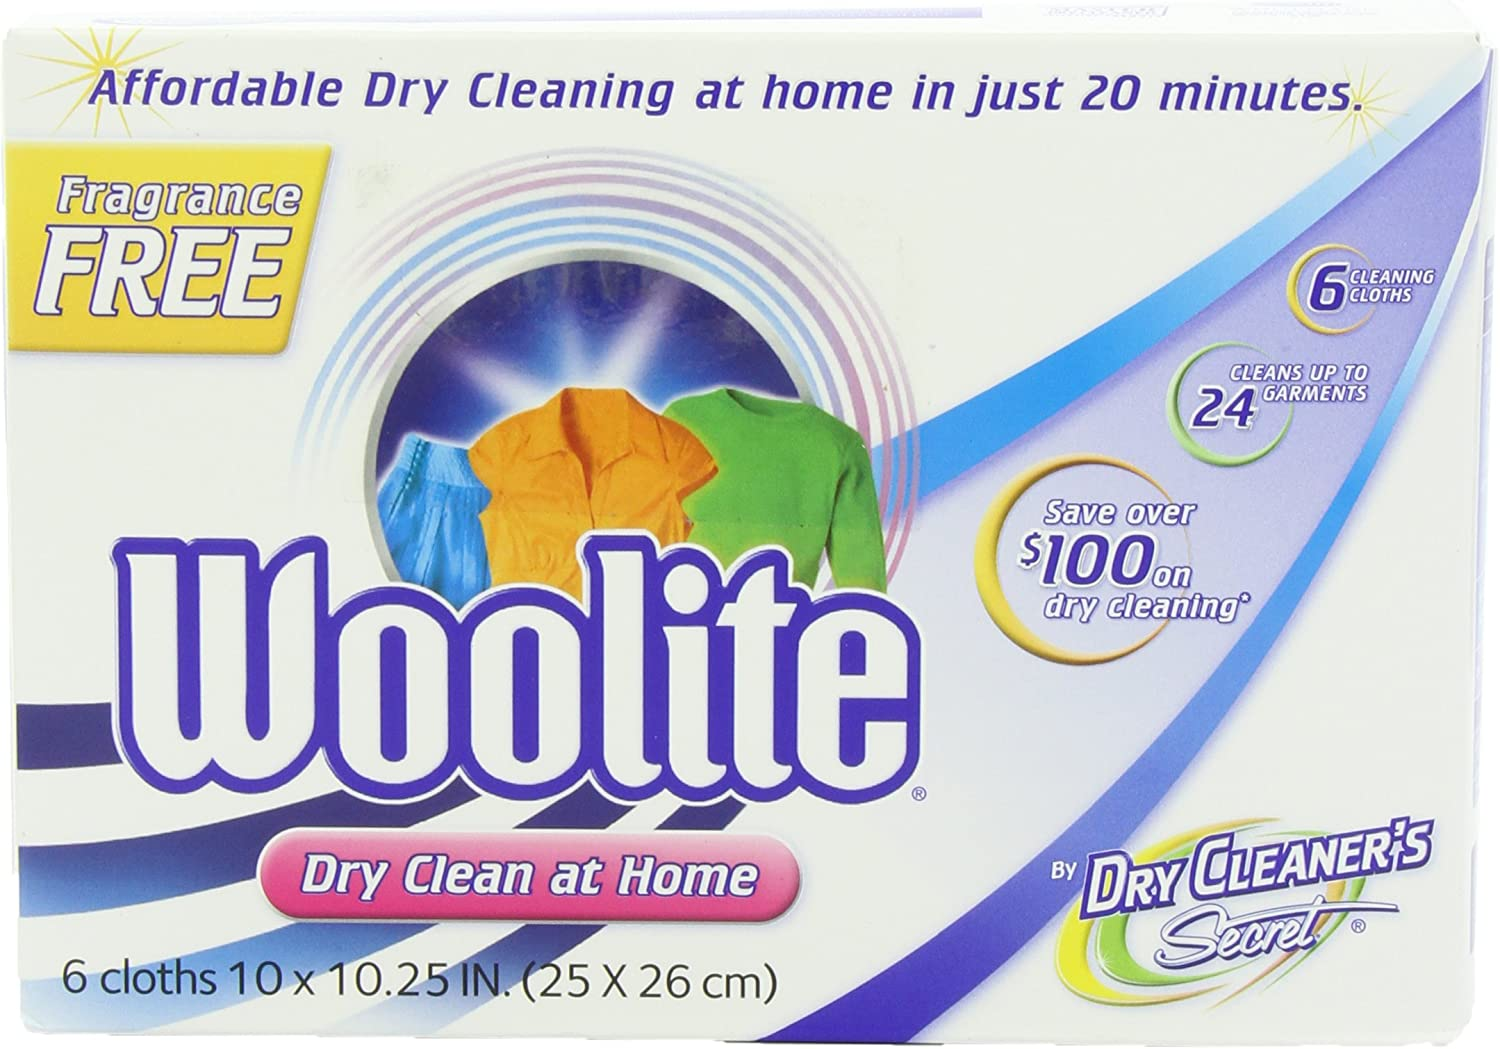 Woolite Dry Cleaner's Secret Fragrance Free Woolite Dry Cleaner's Secret, 6-Count